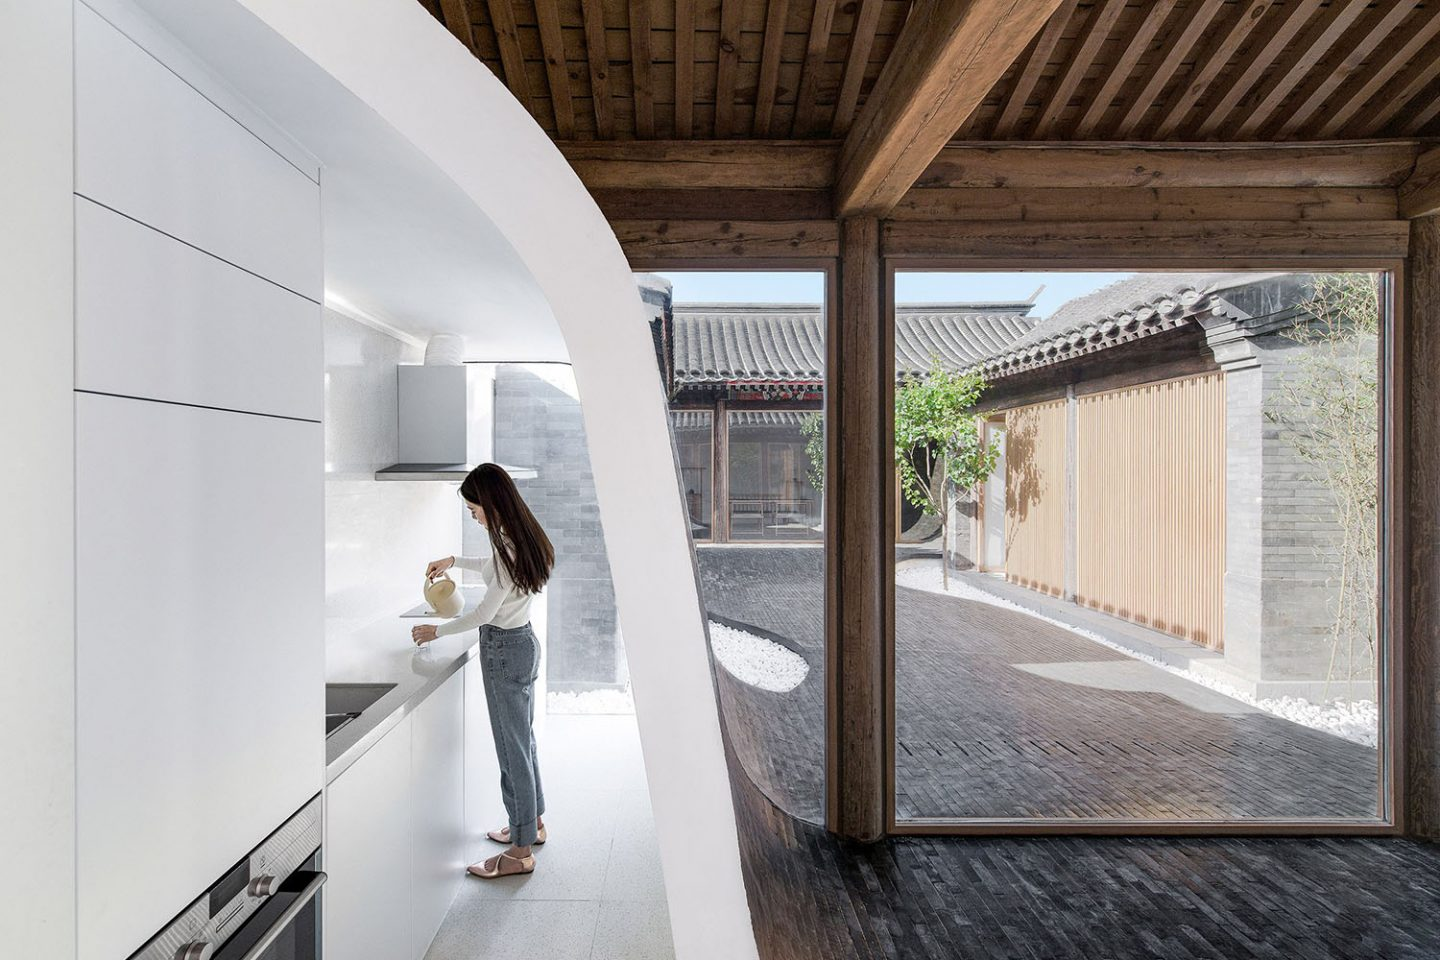 iGNANT_Architecture_Arch_Studio_Twisting_Courtyard_Beijing02